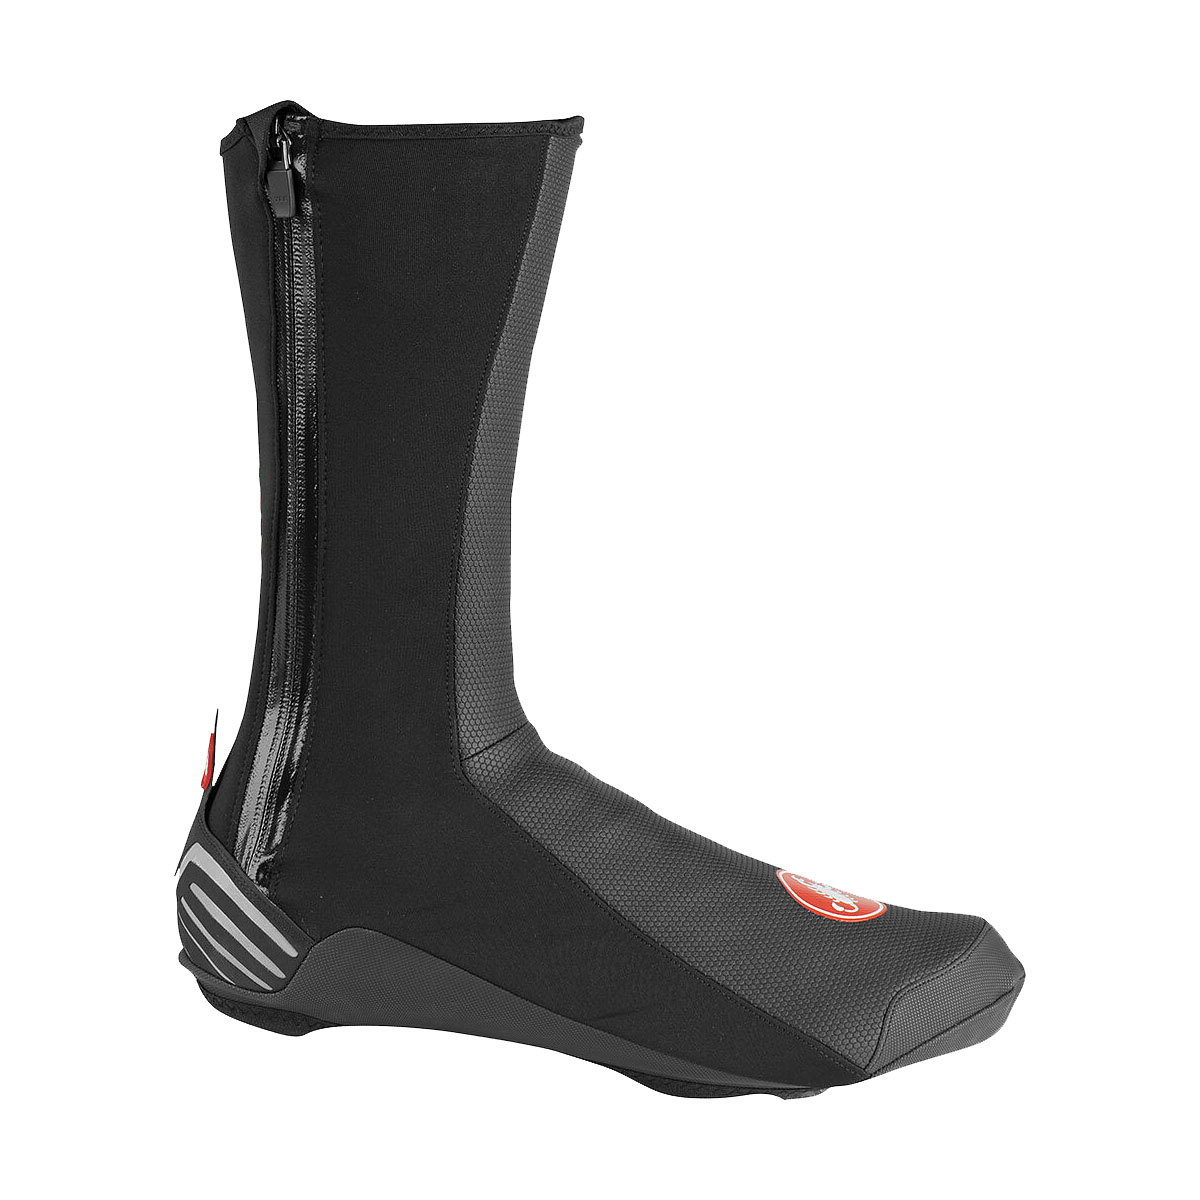 COUVRE-CHAUSSURES CASTELLI ROS 2